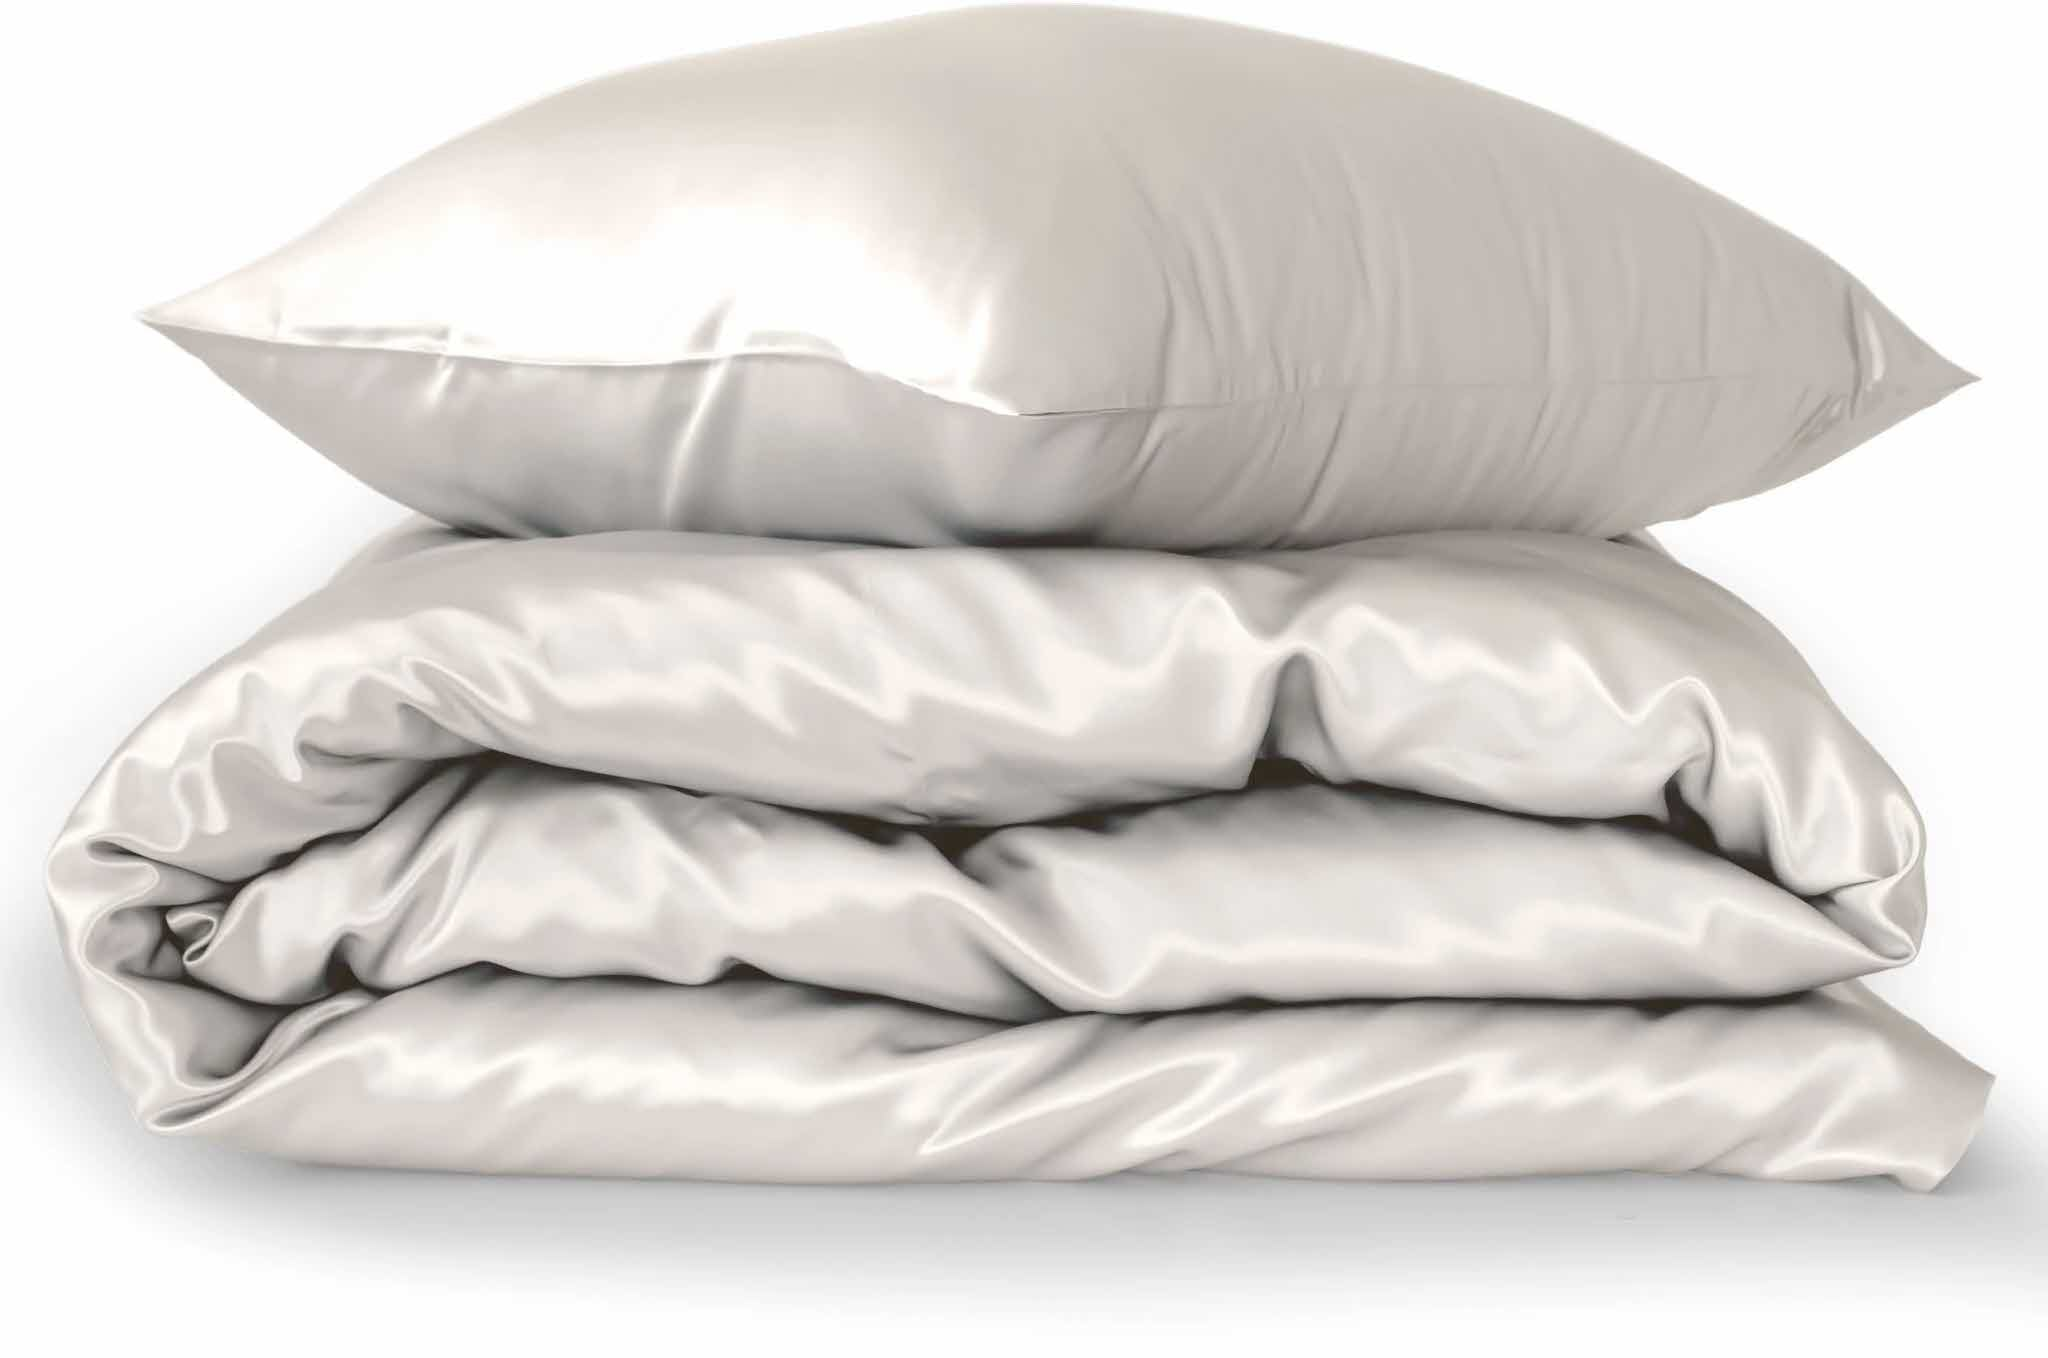 Silk Duvet Covers The Ultimate In Style Beauty And Wellness